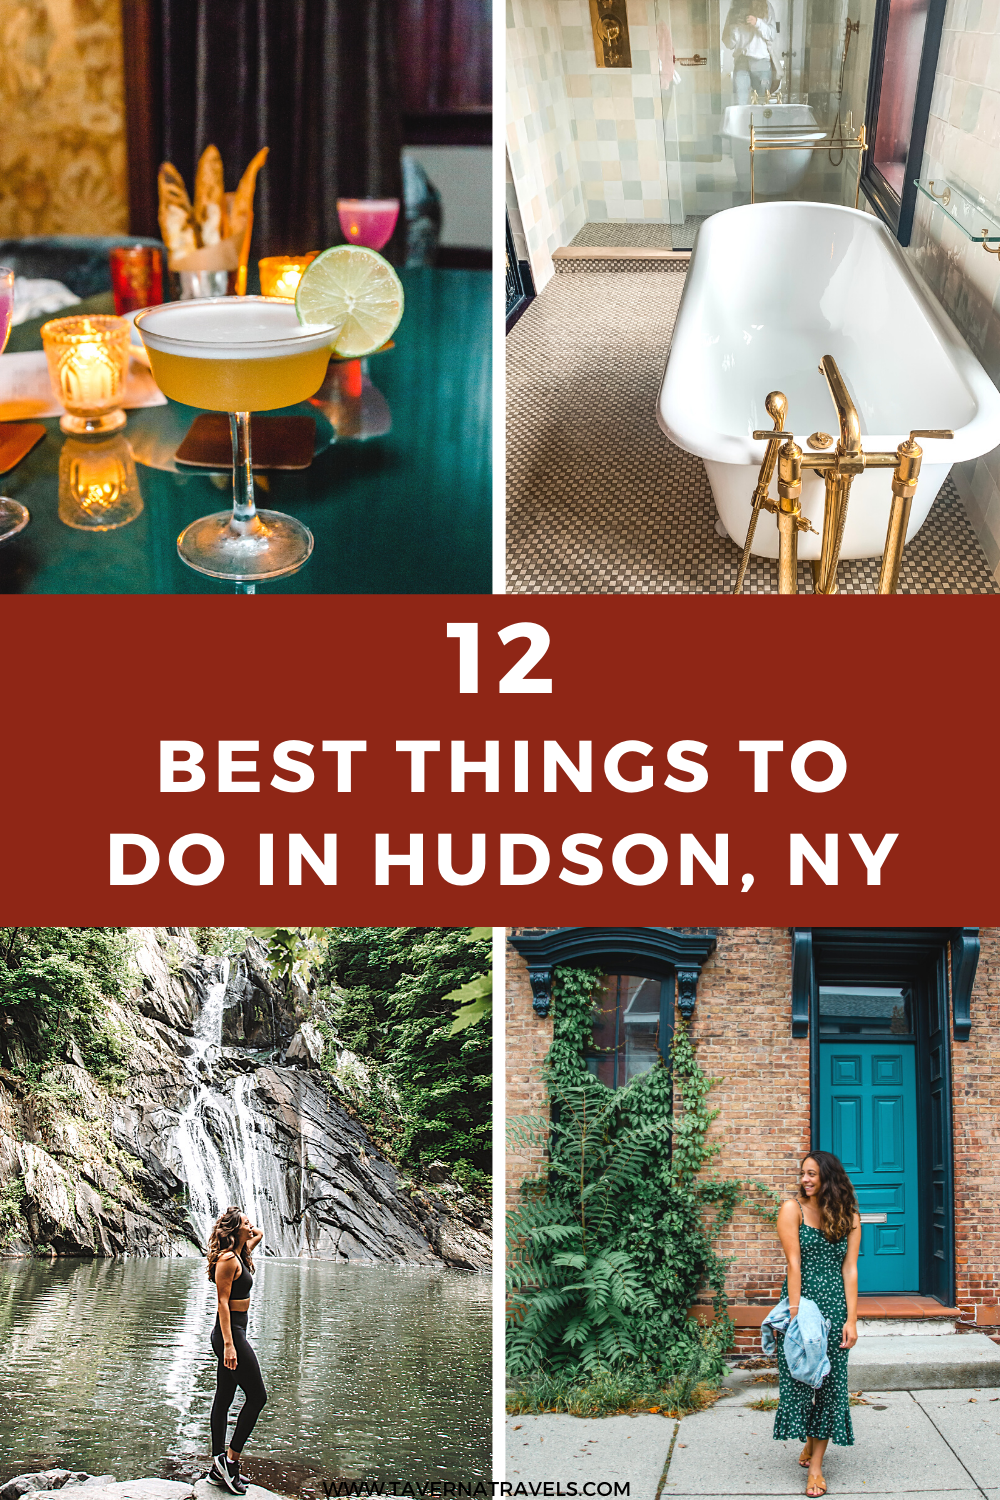 Best Things to do in Hudson, NY pin